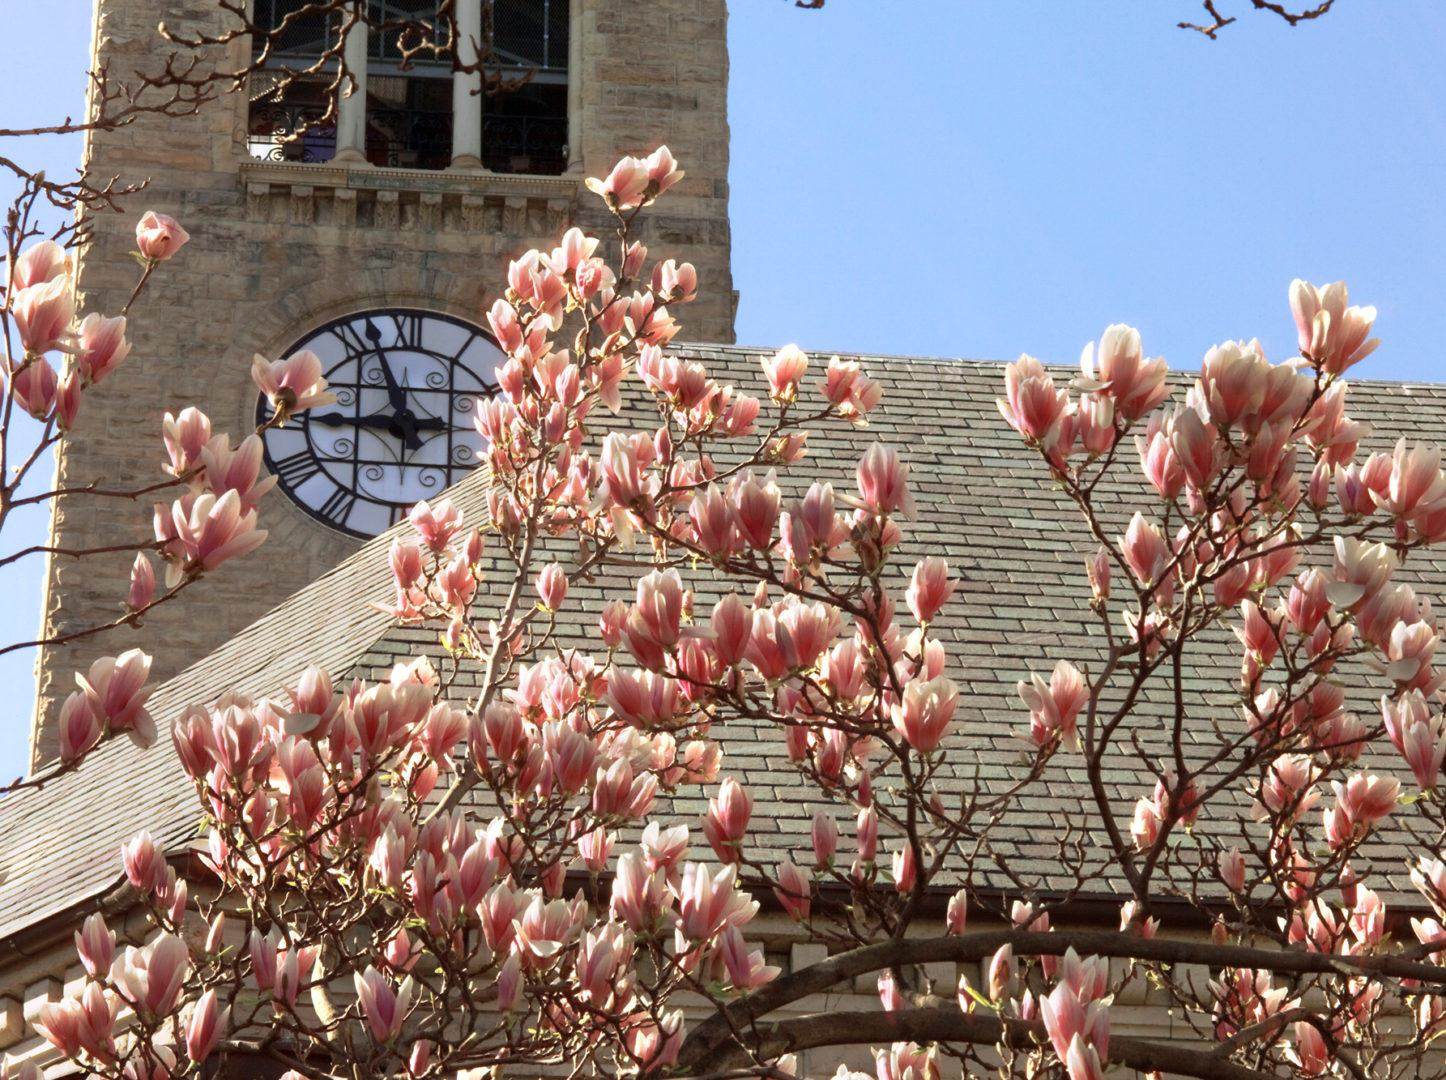 A sugar magnolia in bloom outside McGraw Tower.